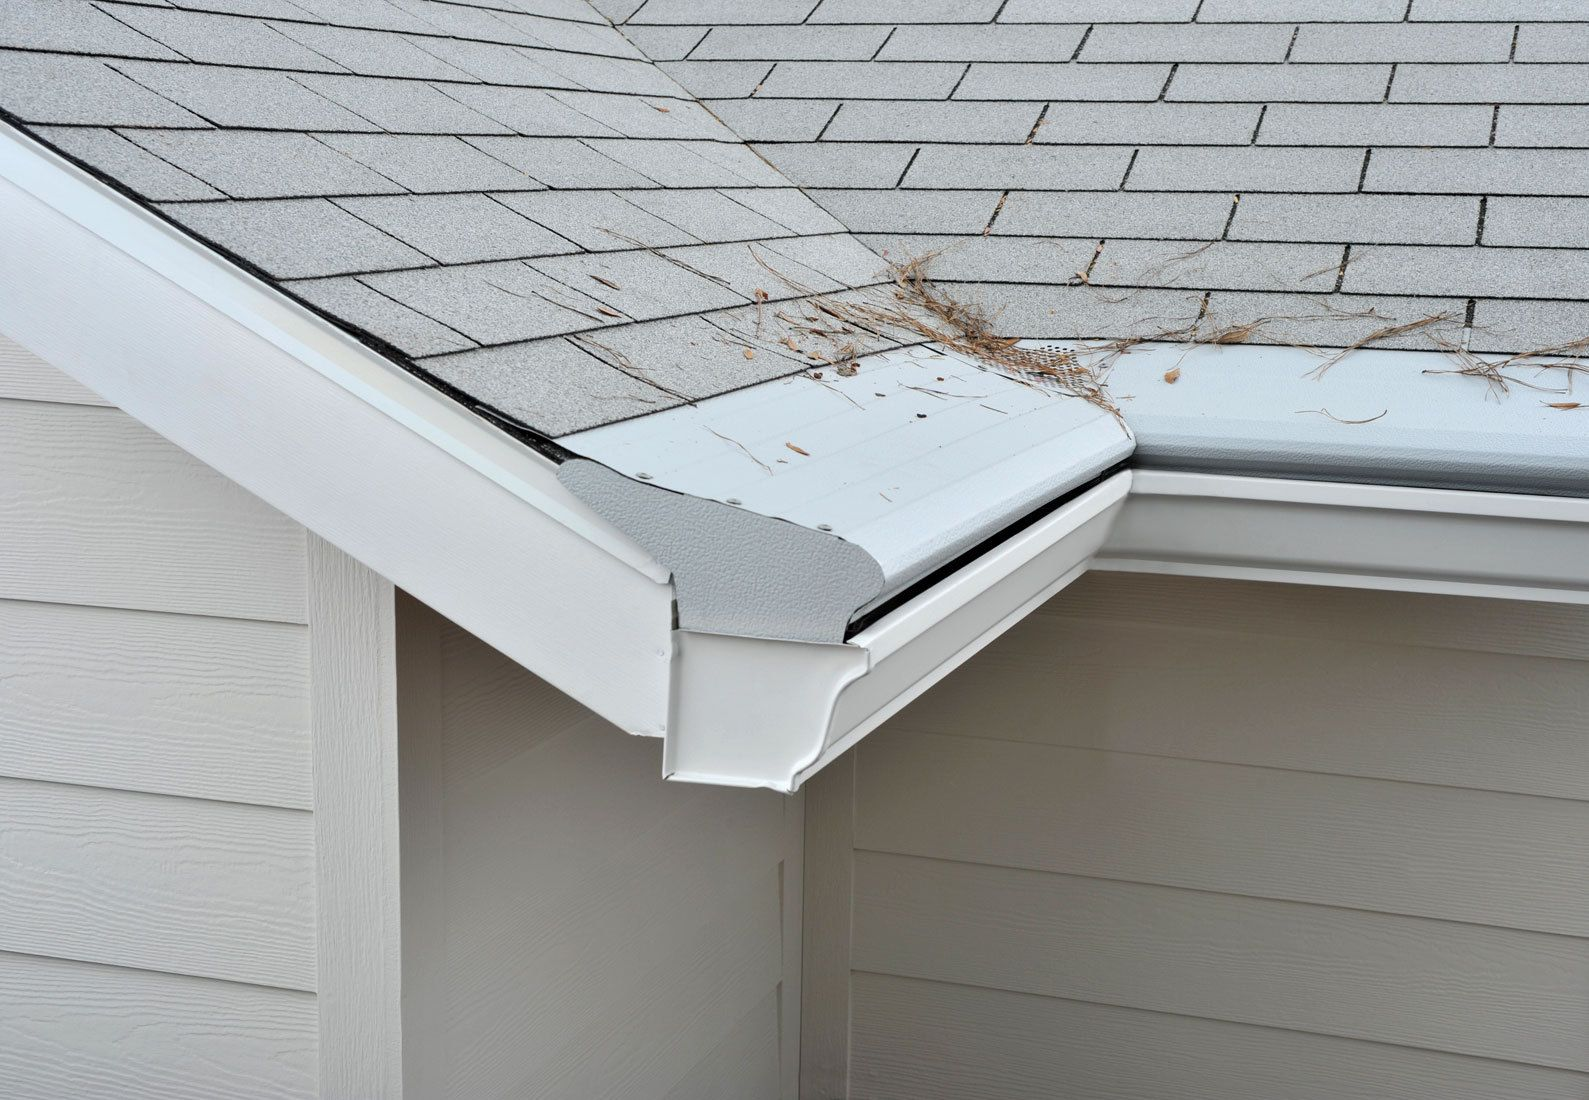 Interior Gutter Protection With Tile Roofs And White Fiber And Gutter With A Cover To Avoid Clogging Gutters And Gutter Protection Gutter Guard Gutter Helmet